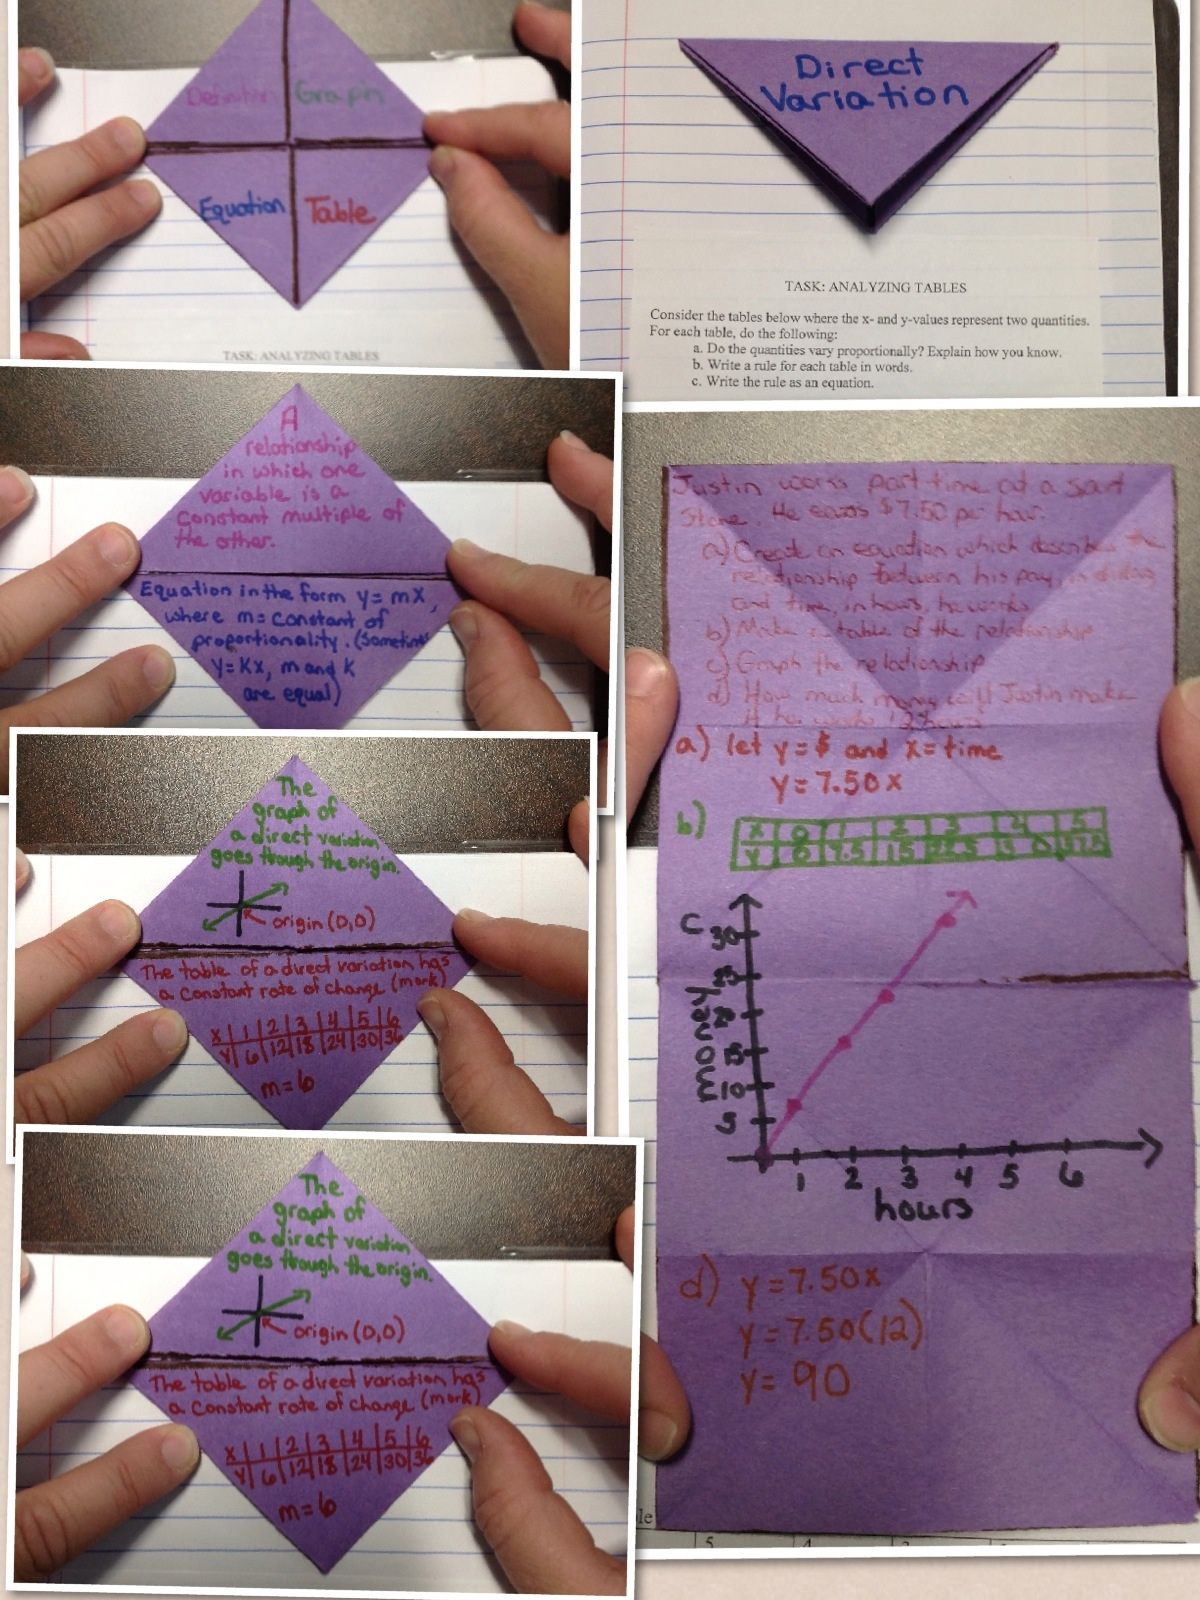 Direct Variation Foldable, Page 71